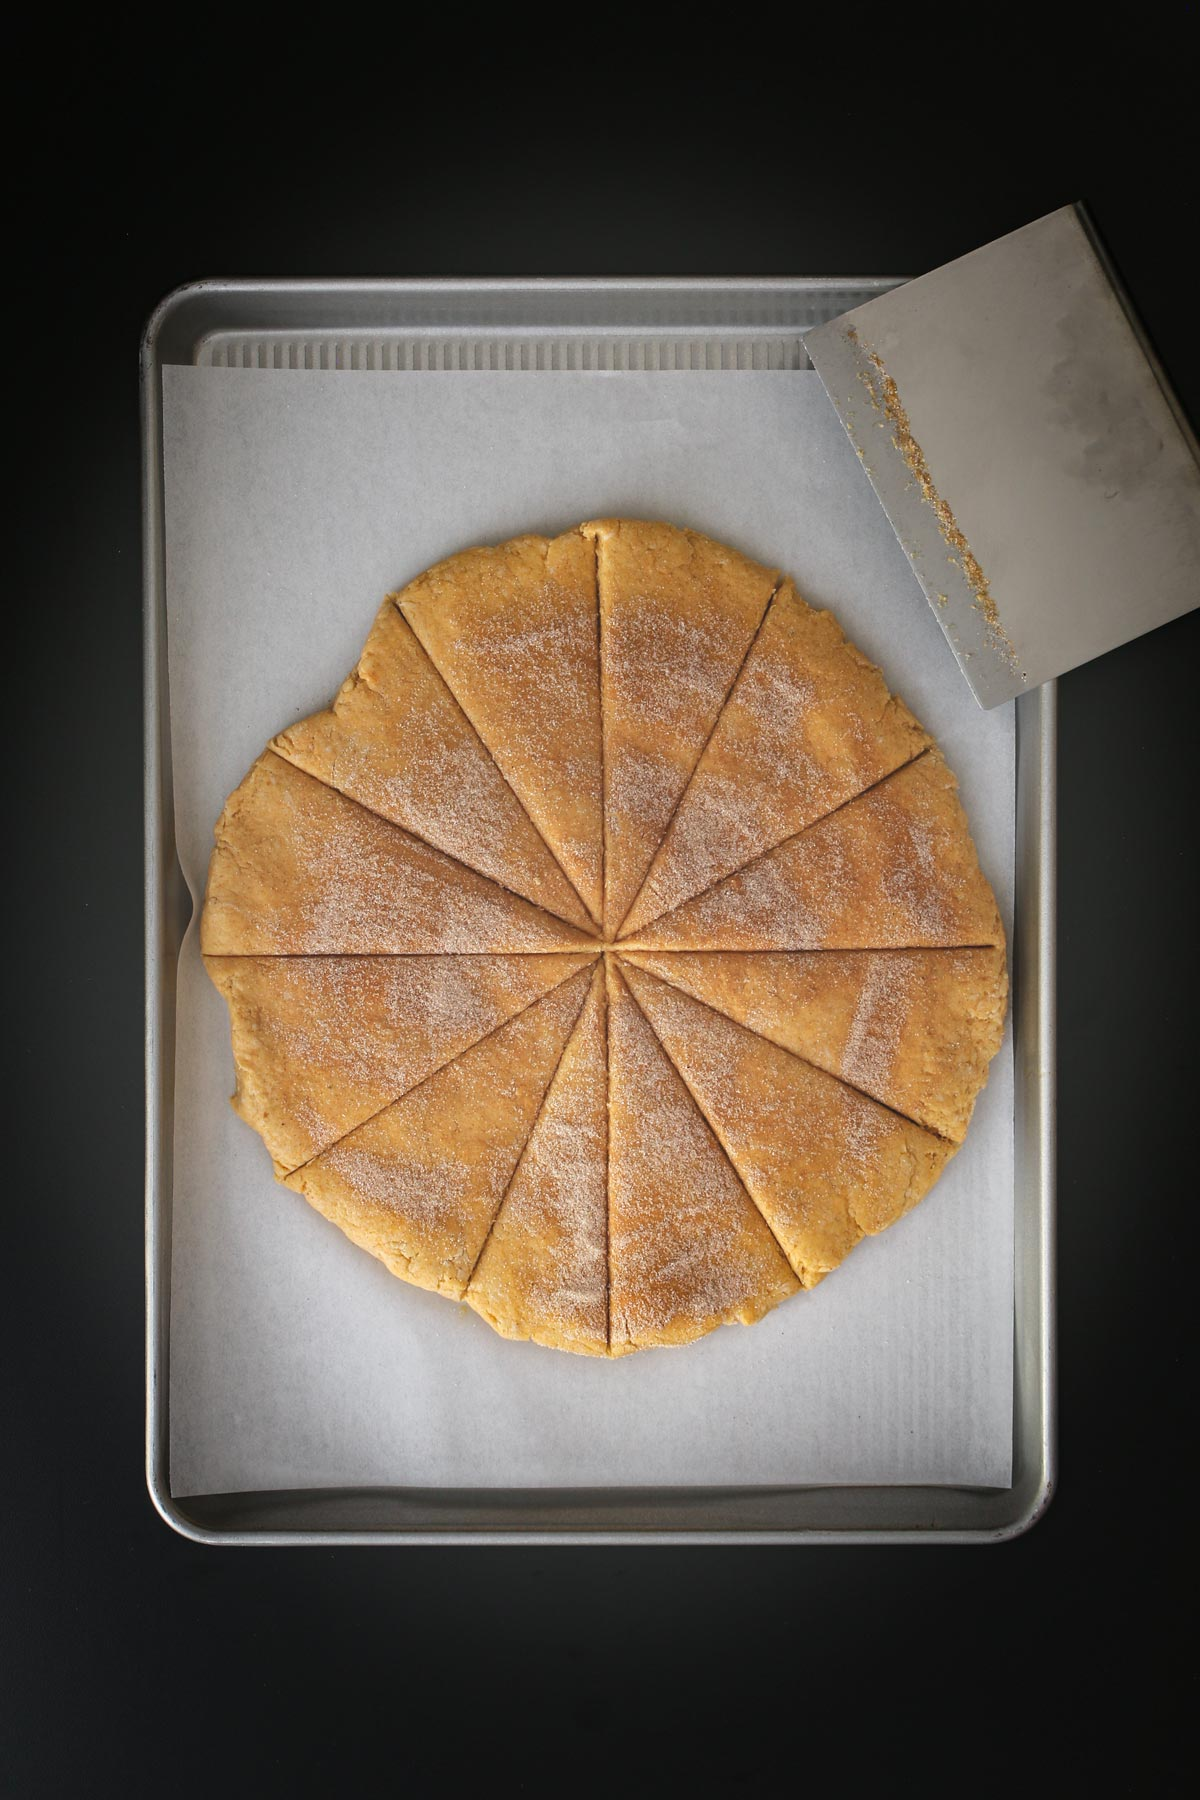 scone round cut into 12 triangles with dough knife.